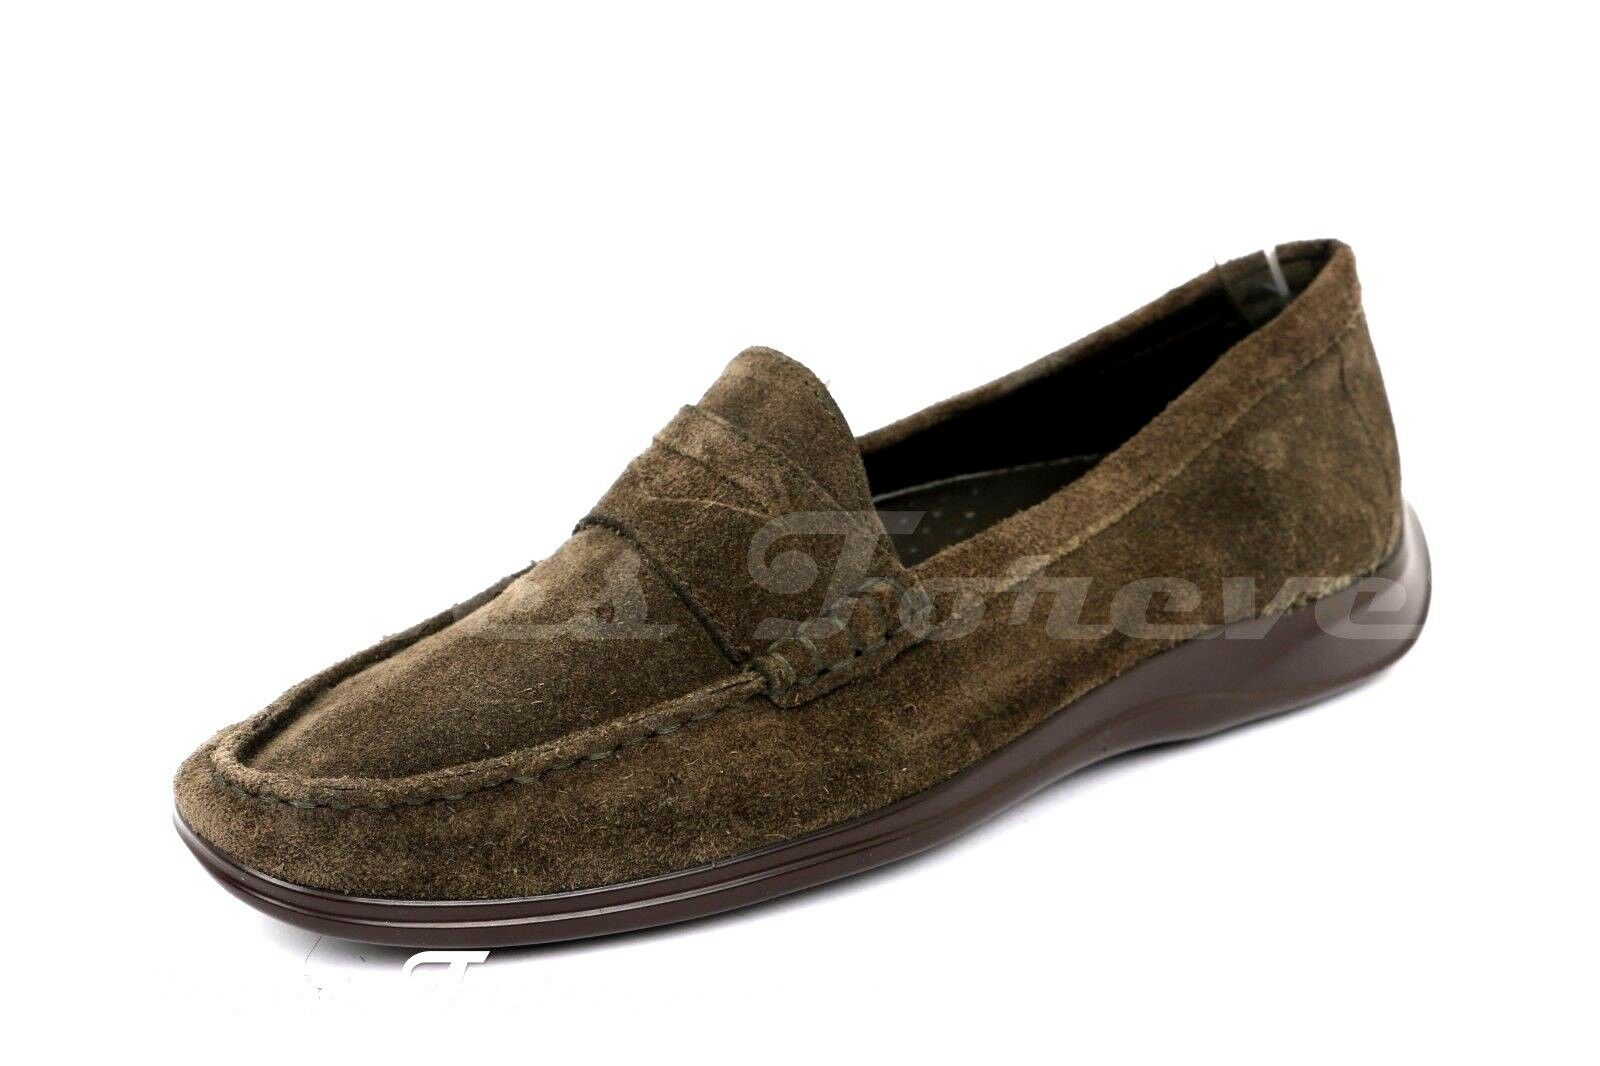 donna COLE HAAN  2048883 Olive verde suse mocassis sz.6 B  comprare a buon mercato